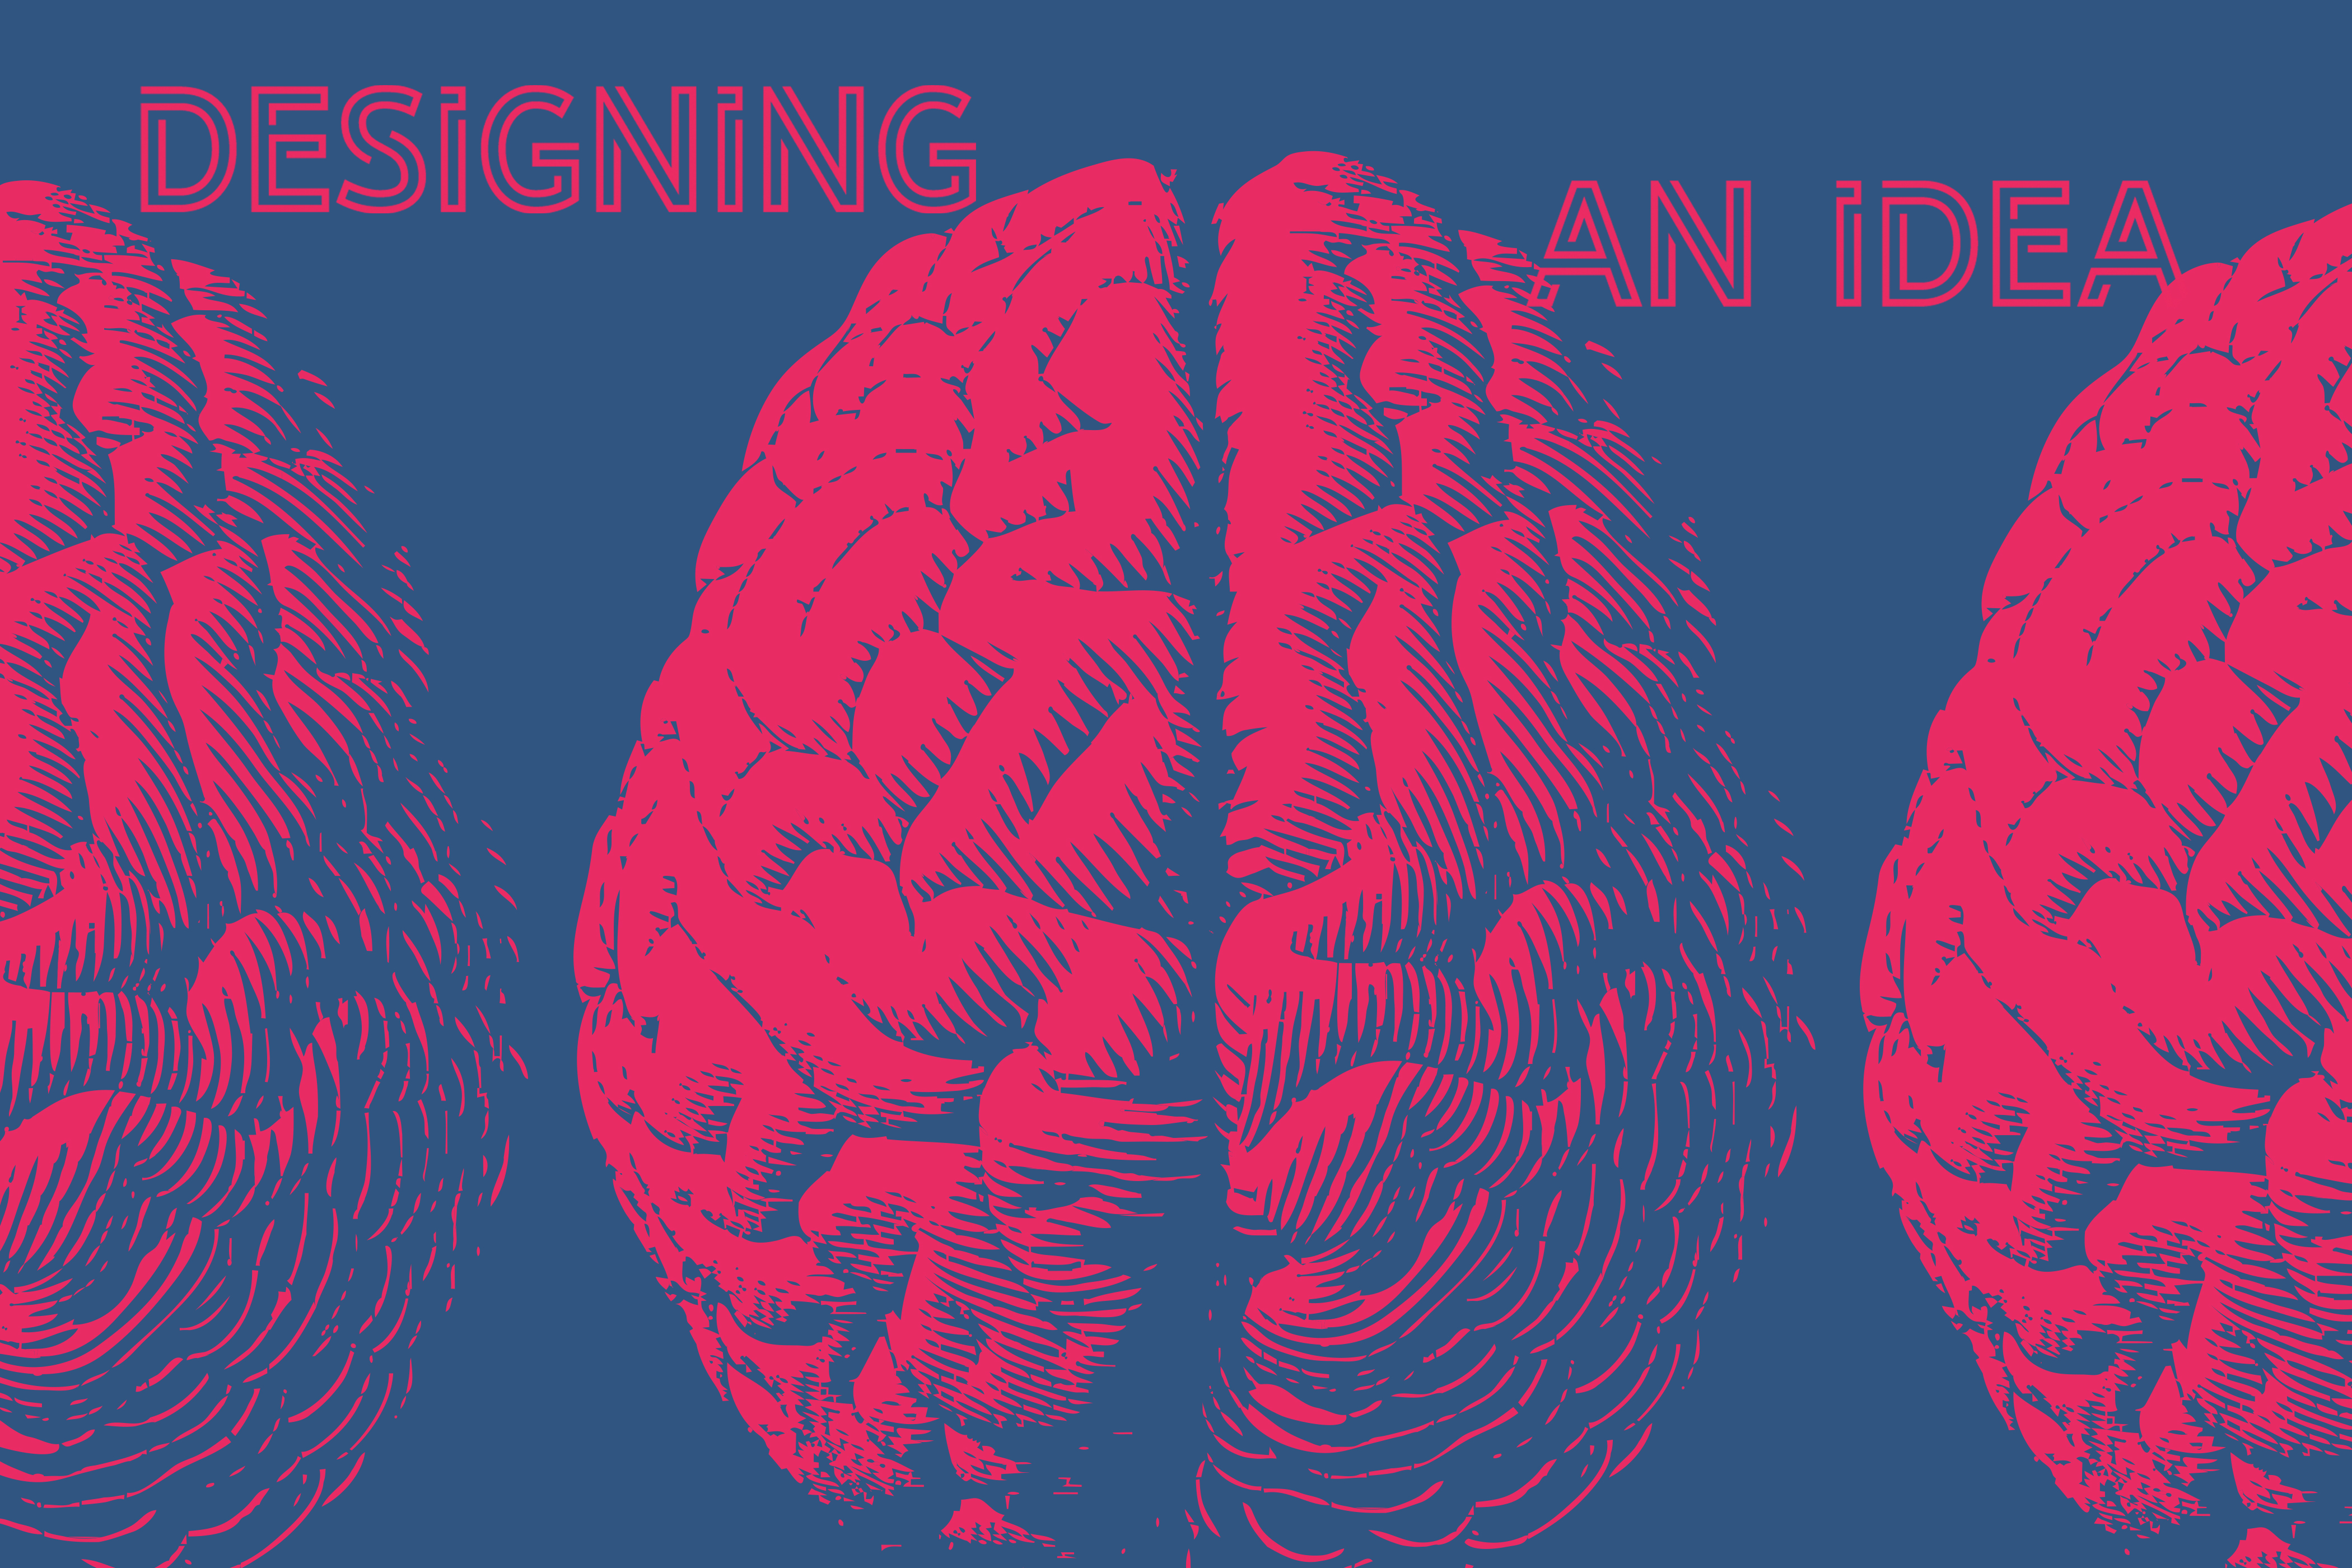 Big Ideas eBook Studies How to go from Inspiration to Design